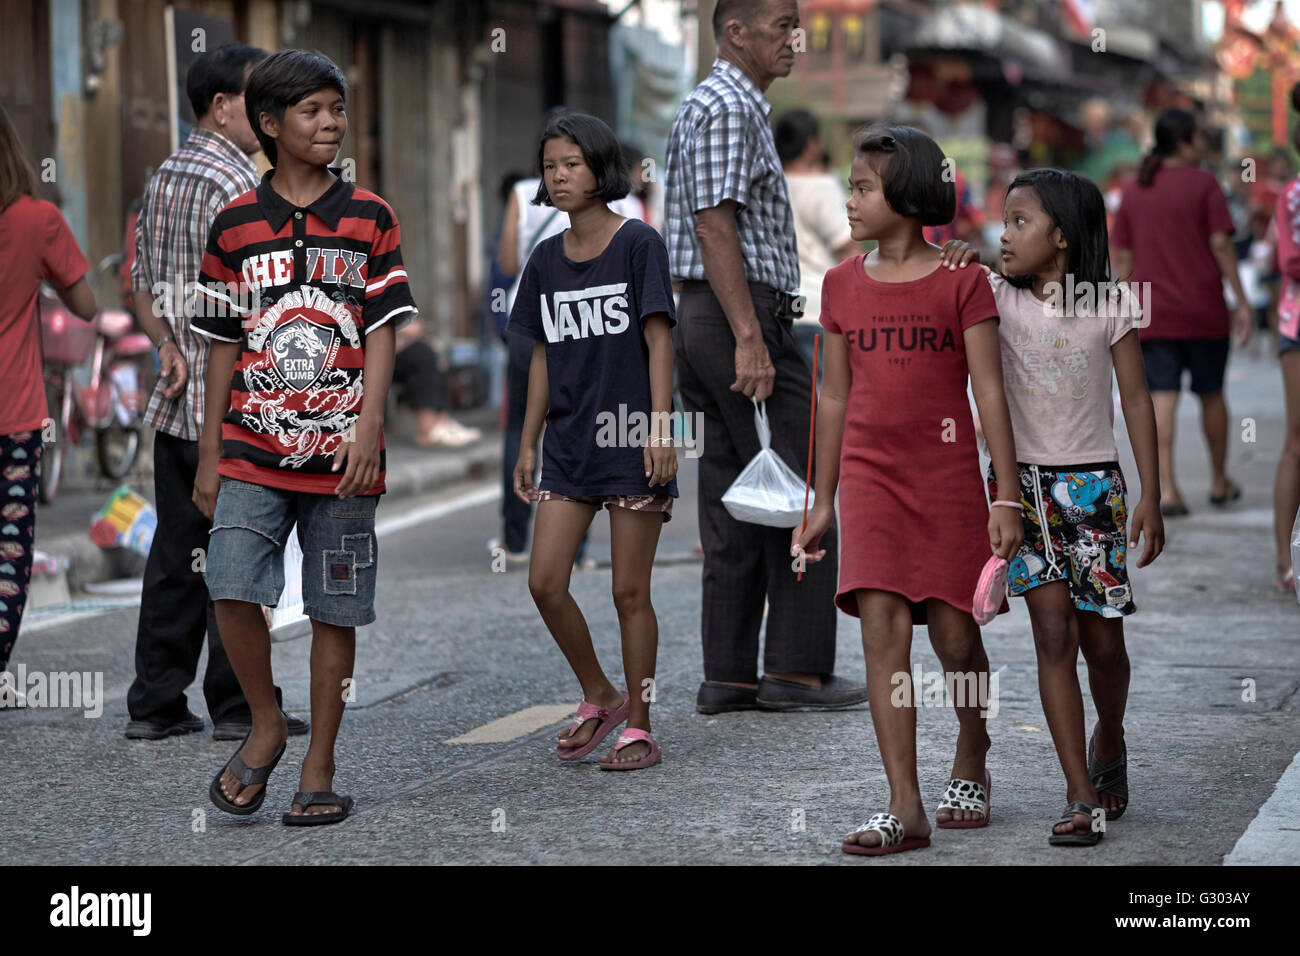 Asian street scene with young boy and girl interacting. Thailand S. E. Asia